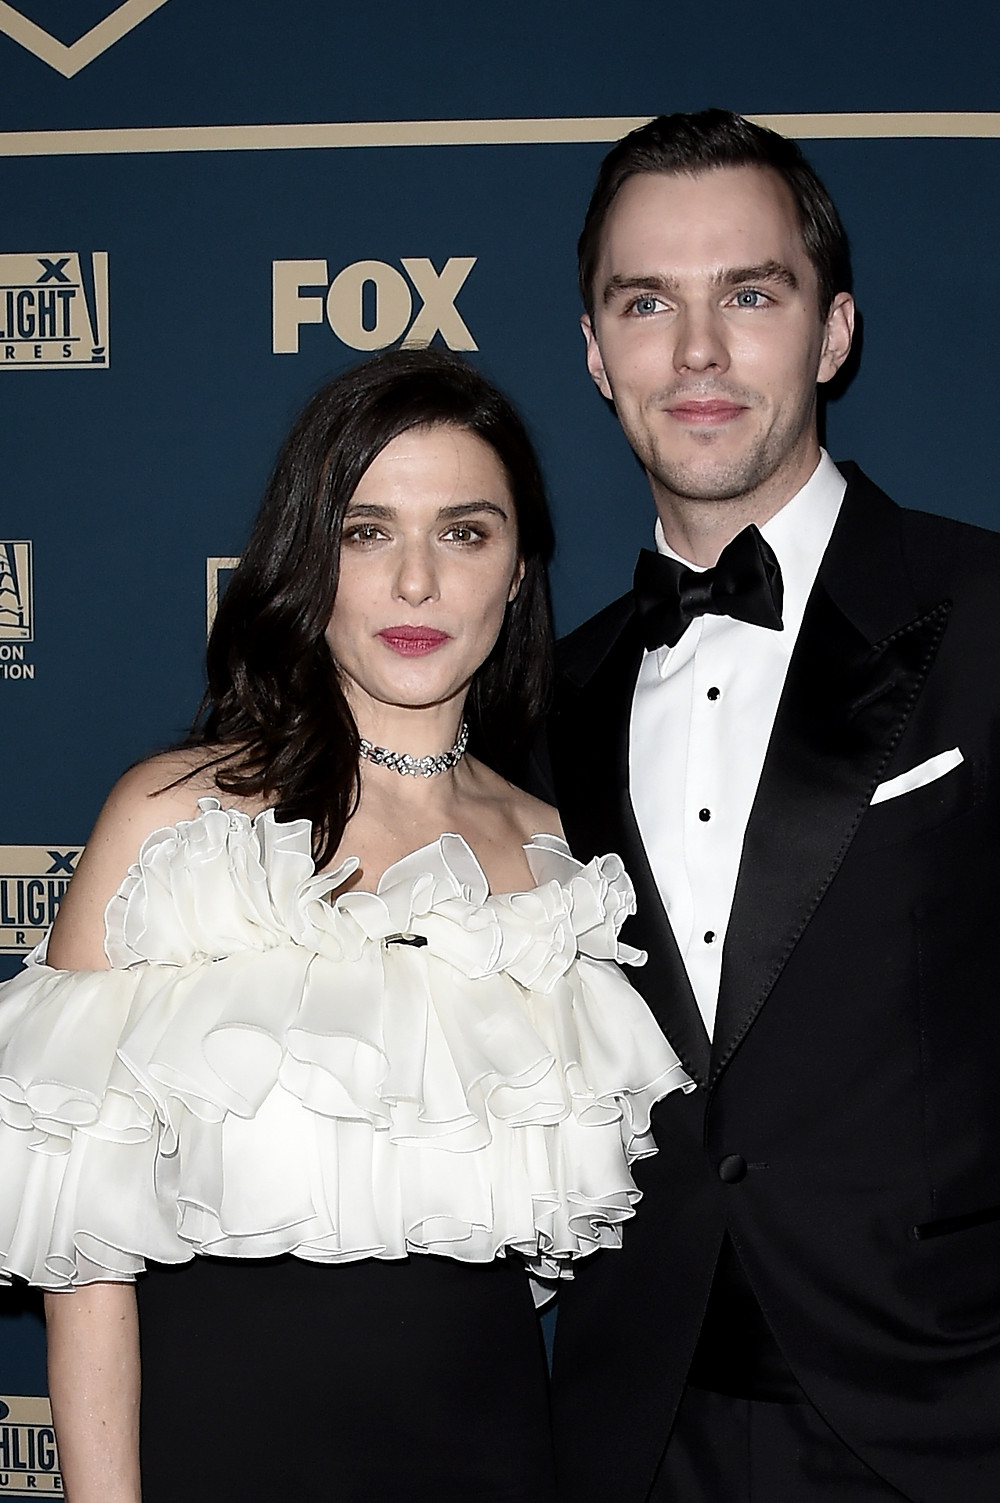 The Favourite co-stars Rachel Weisz & Nicholas Hoult at the Golden Globes Fox Party